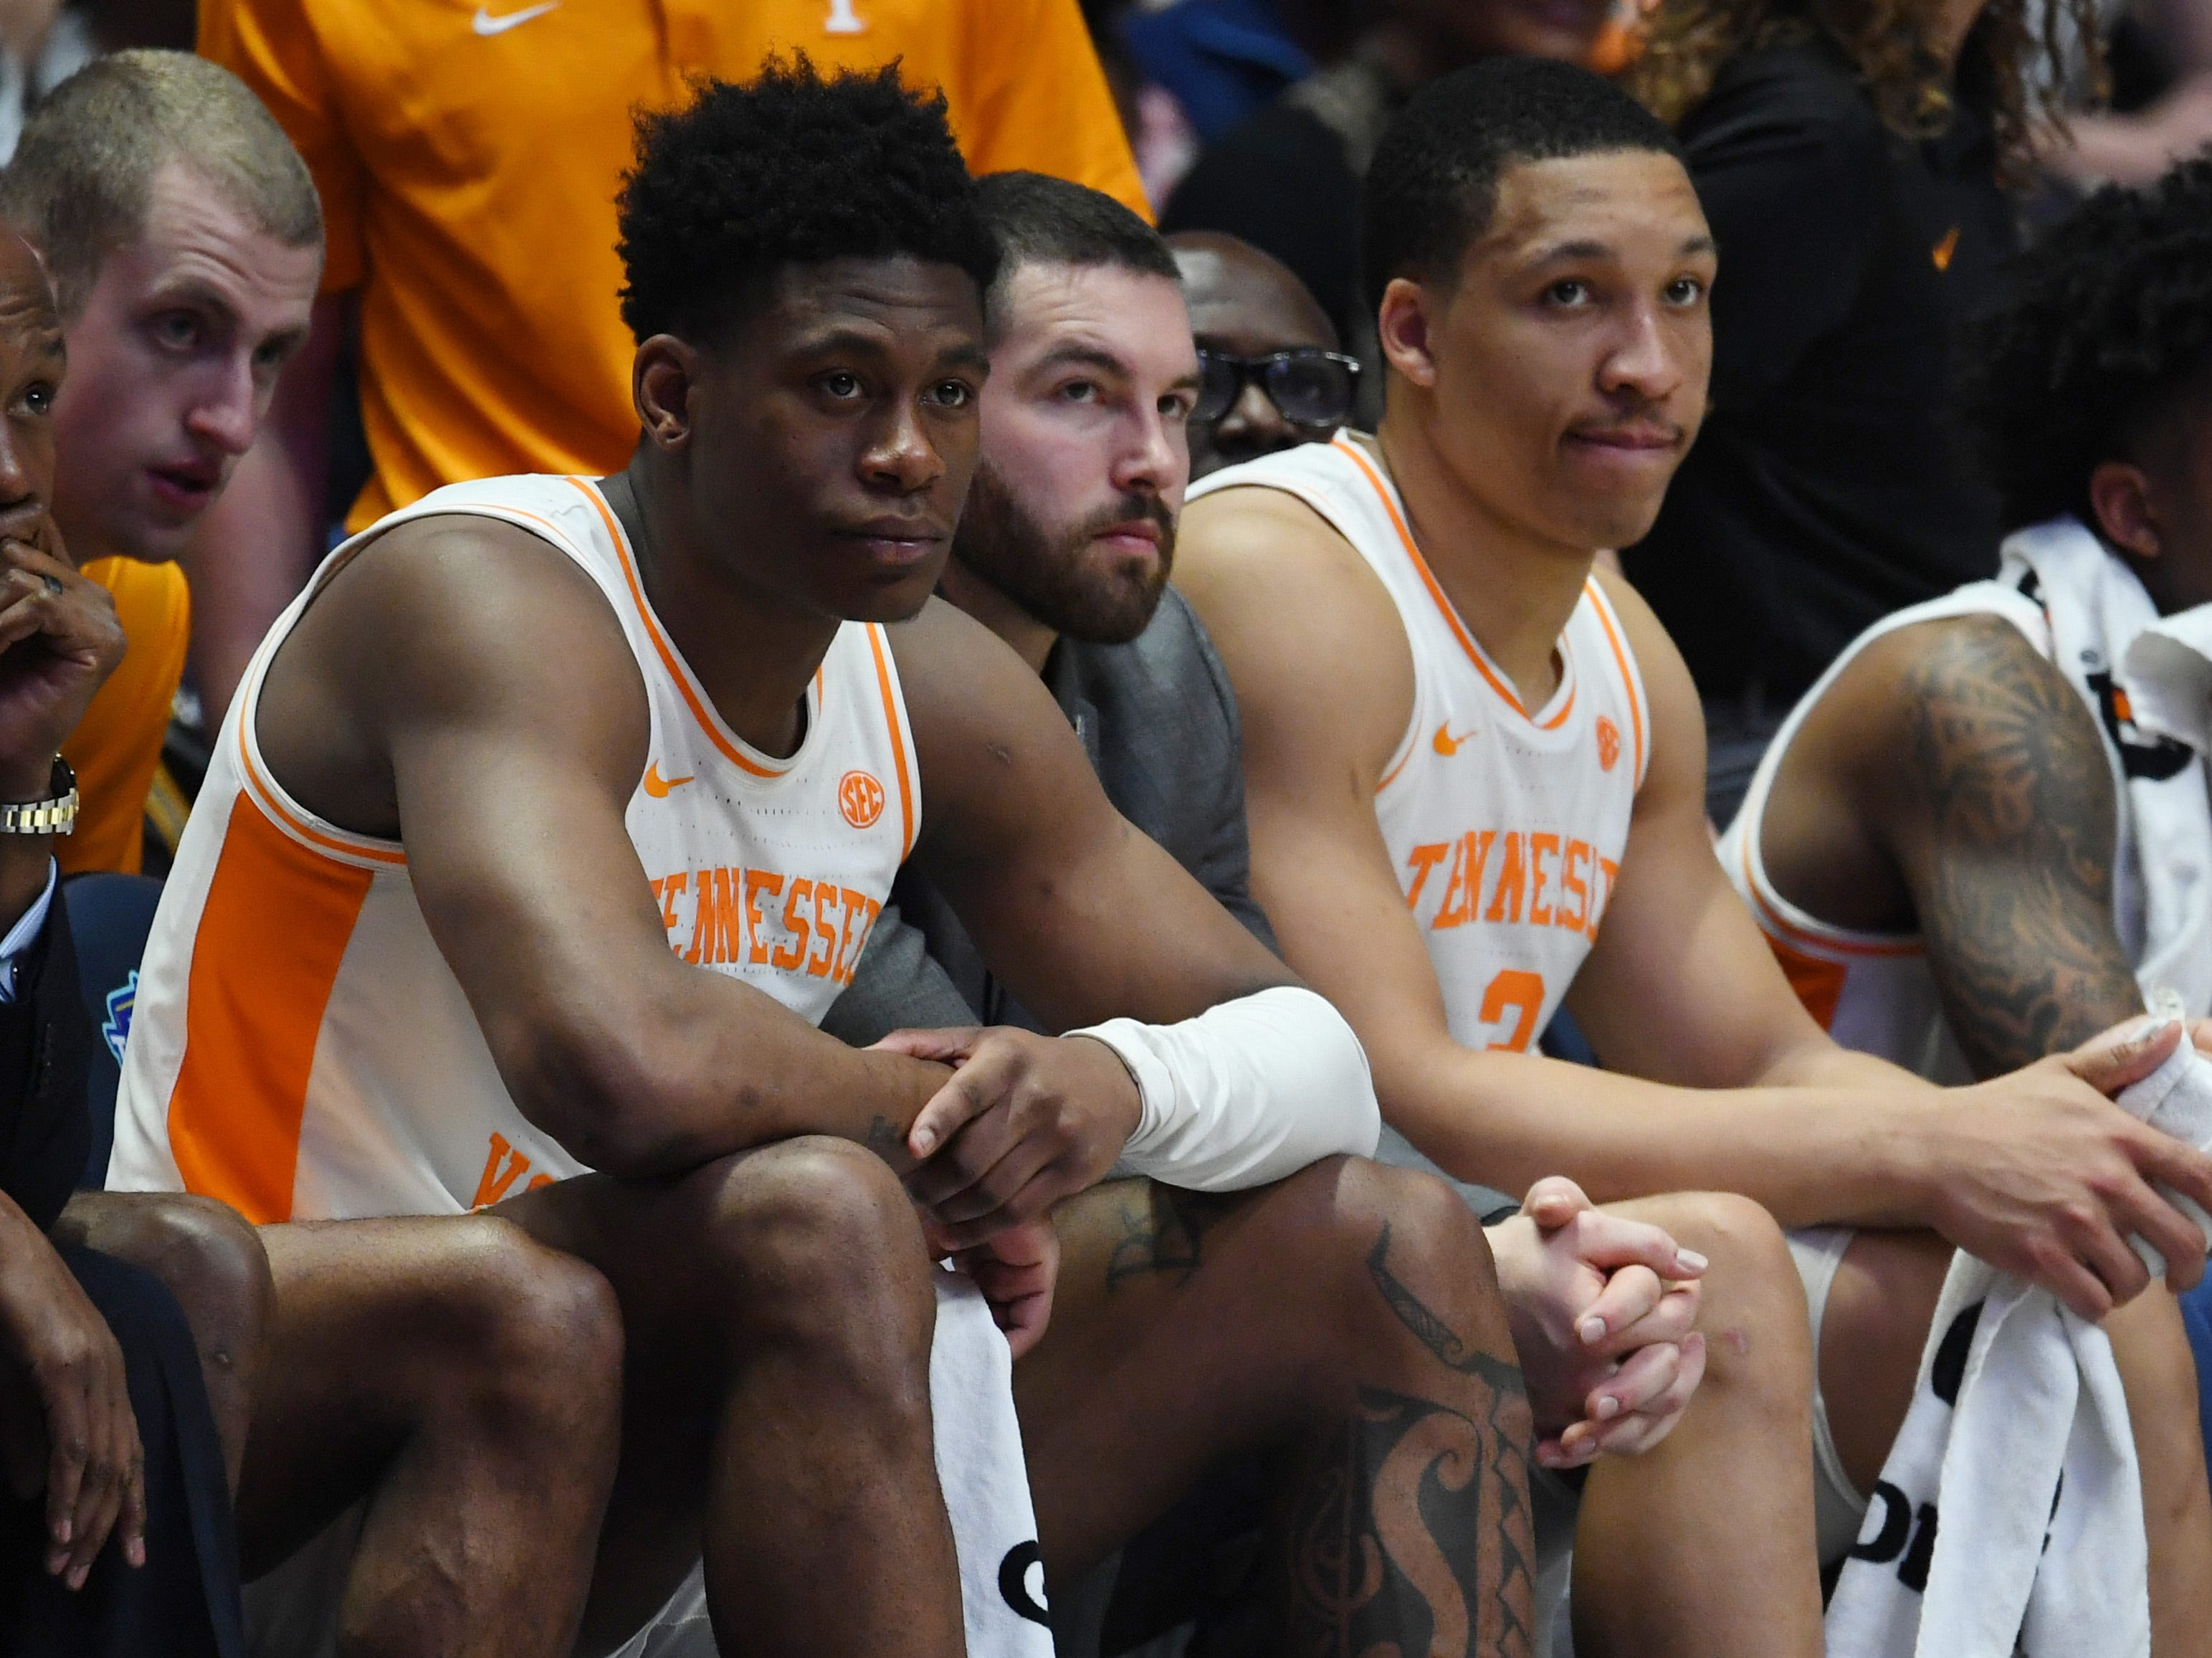 Mar 17, 2019; Nashville, TN, USA; Tennessee Volunteers guard Admiral Schofield (5) and Tennessee Volunteers forward Grant Williams (2) late in a loss to Auburn Tigers in the SEC conference tournament championship game at Bridgestone Arena. Mandatory Credit: Christopher Hanewinckel-USA TODAY Sports